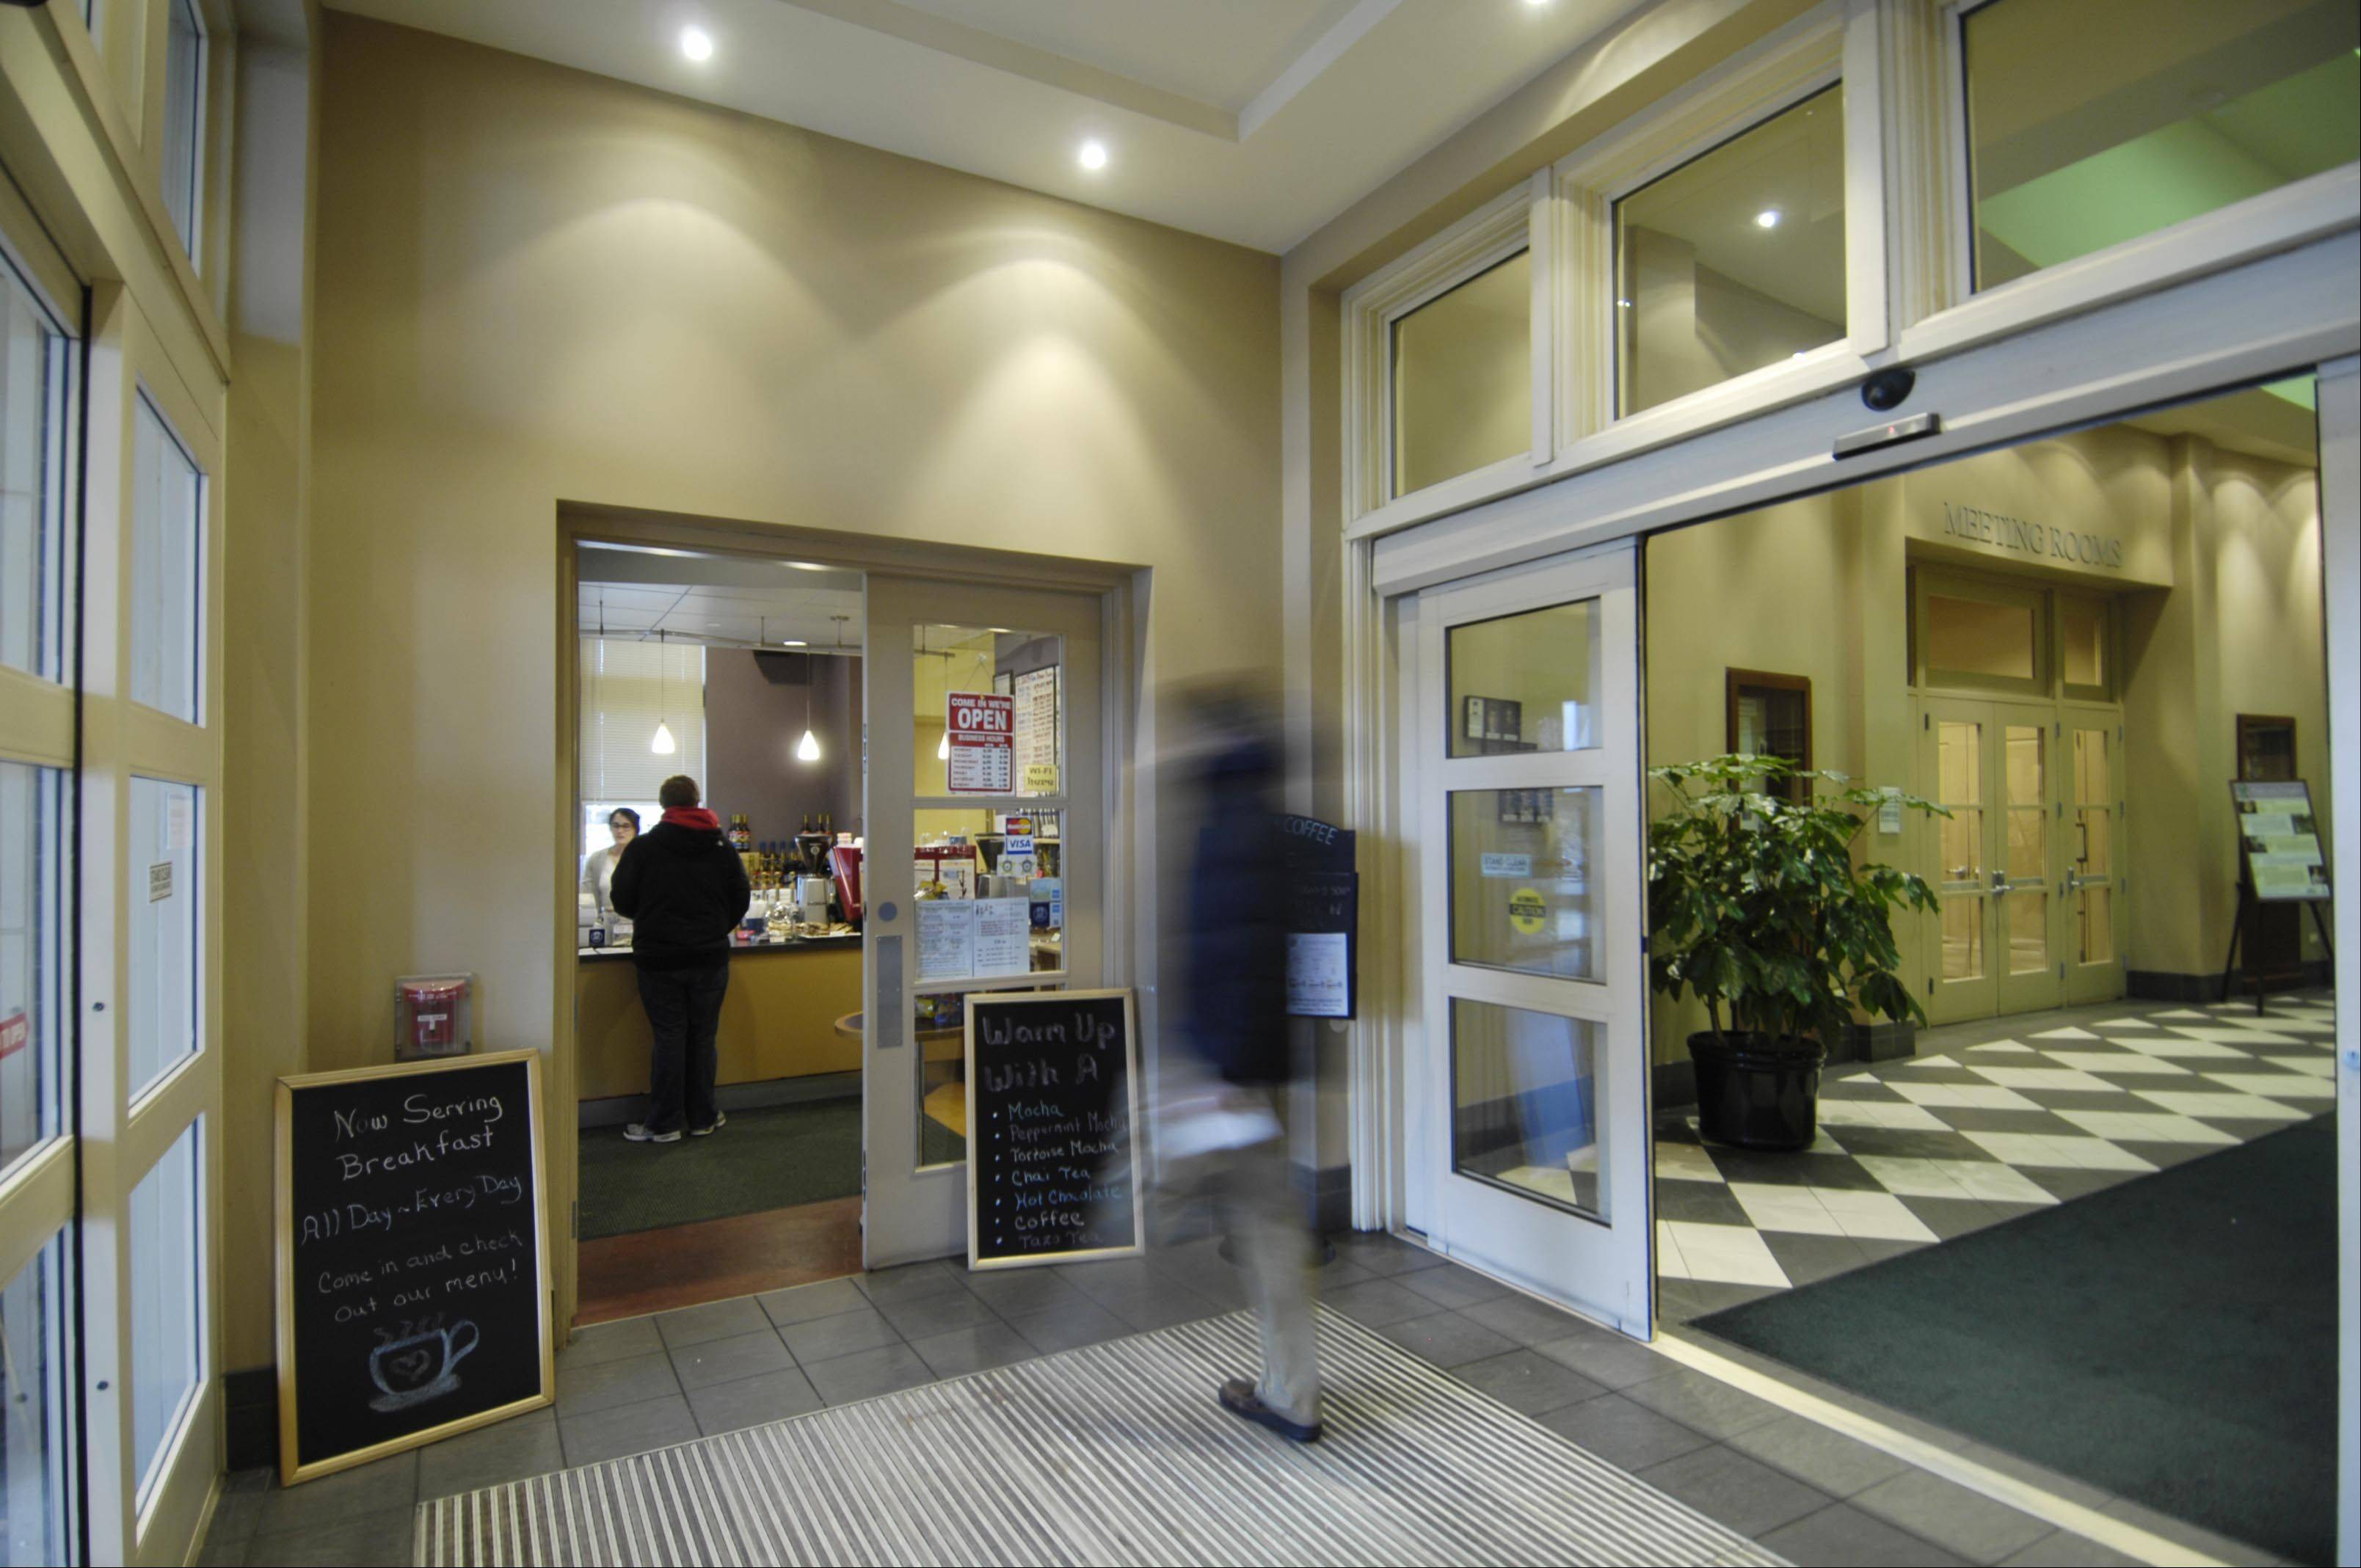 A patron walks with a library book to the 10 South Cafe in the Batavia Public Library lobby.